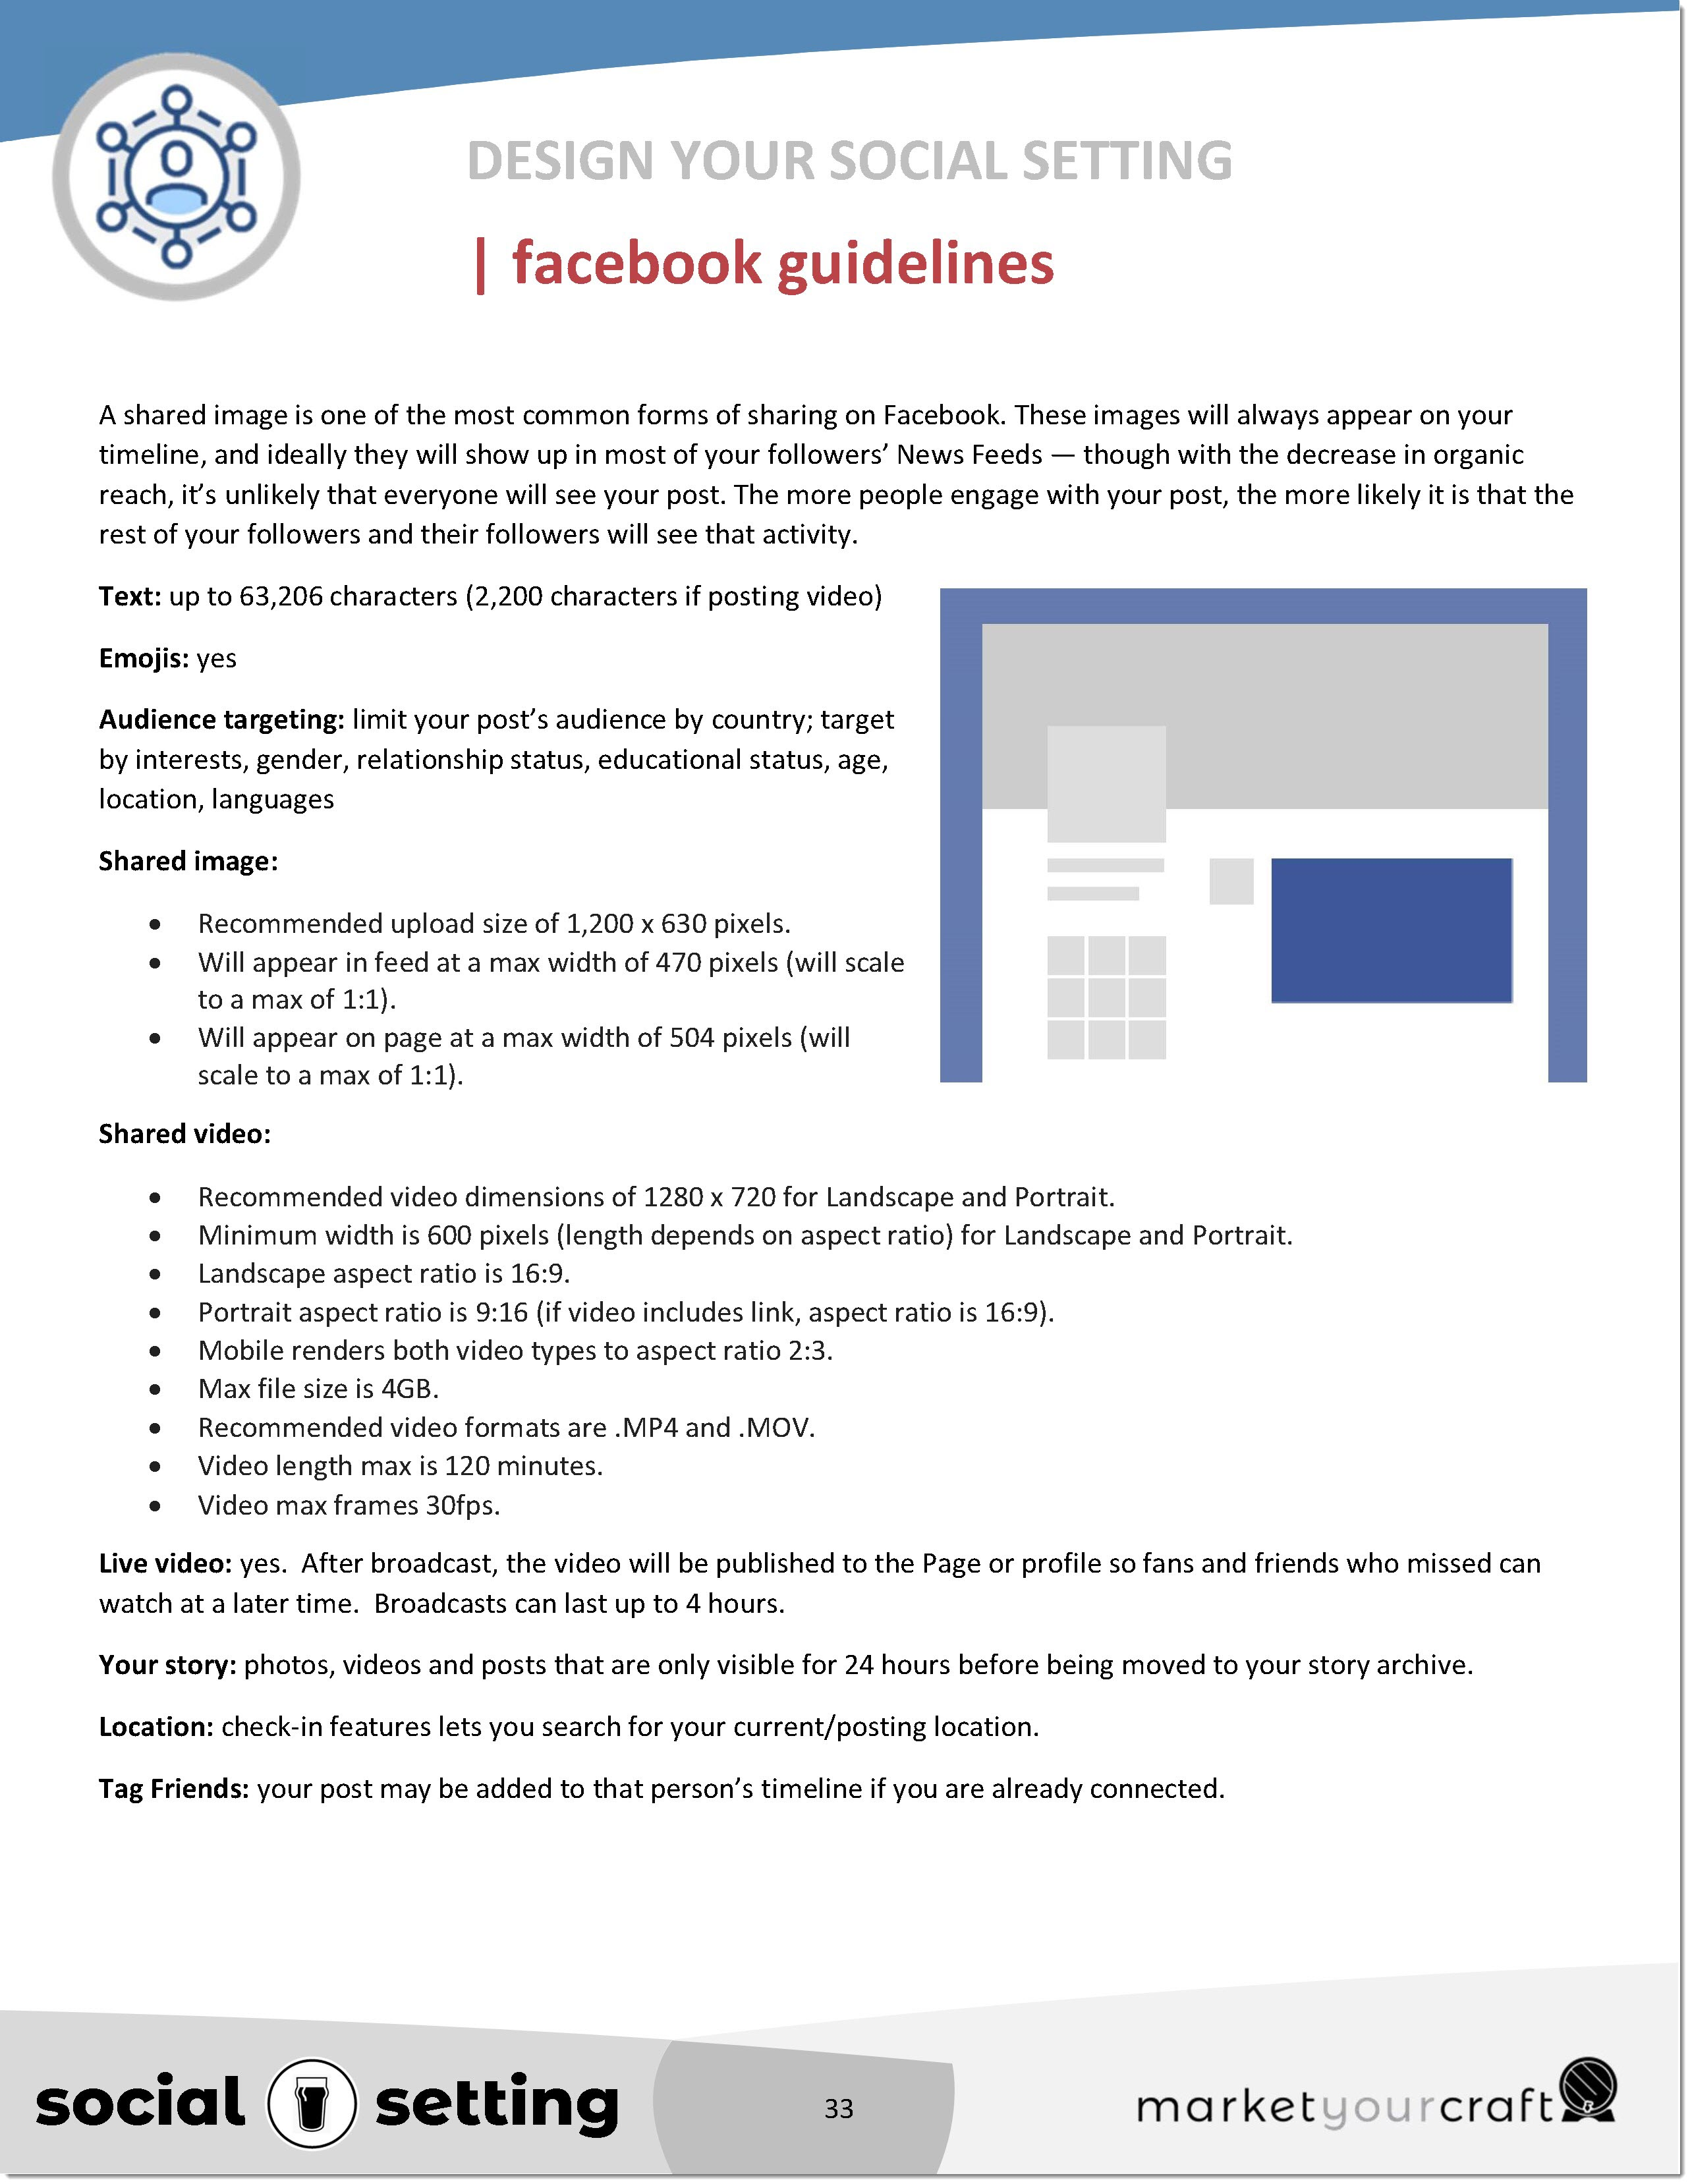 Market Your Craft - Social Setting - Facebook guidelines